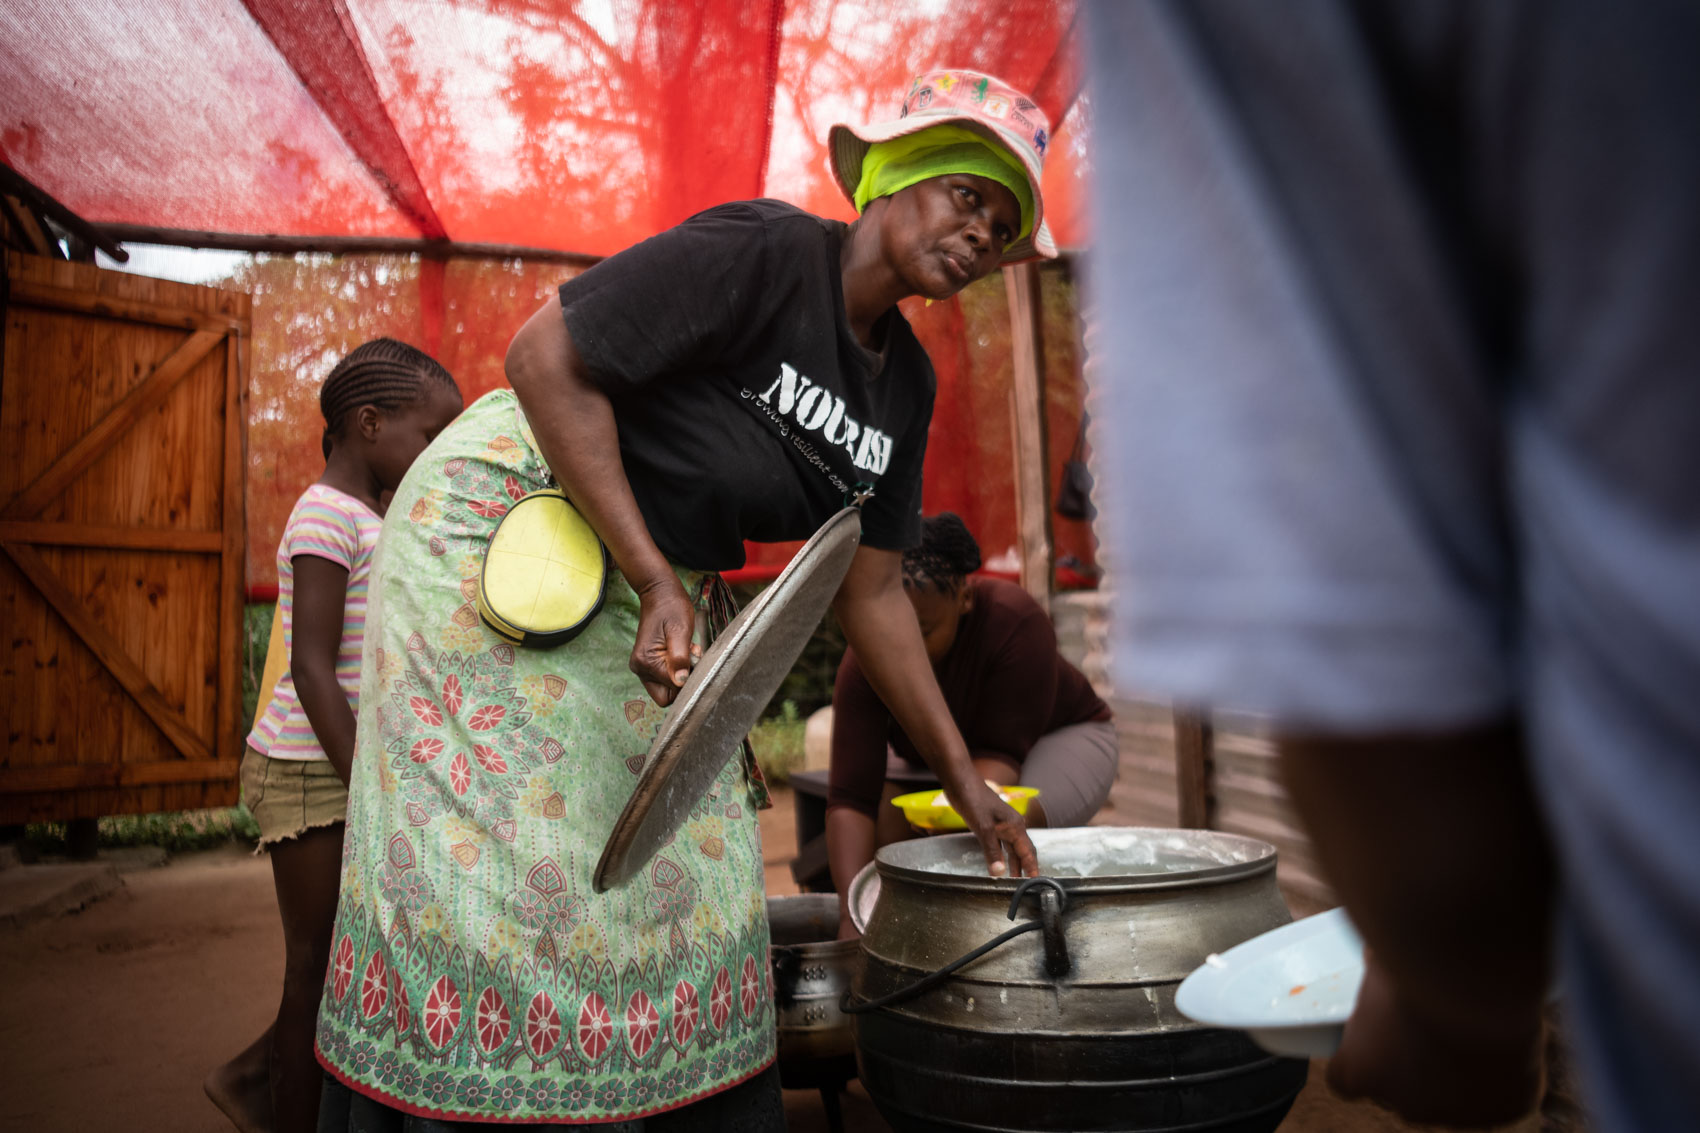 A granny worker at Nourish NPO opening the lid of a pot filled with porridge